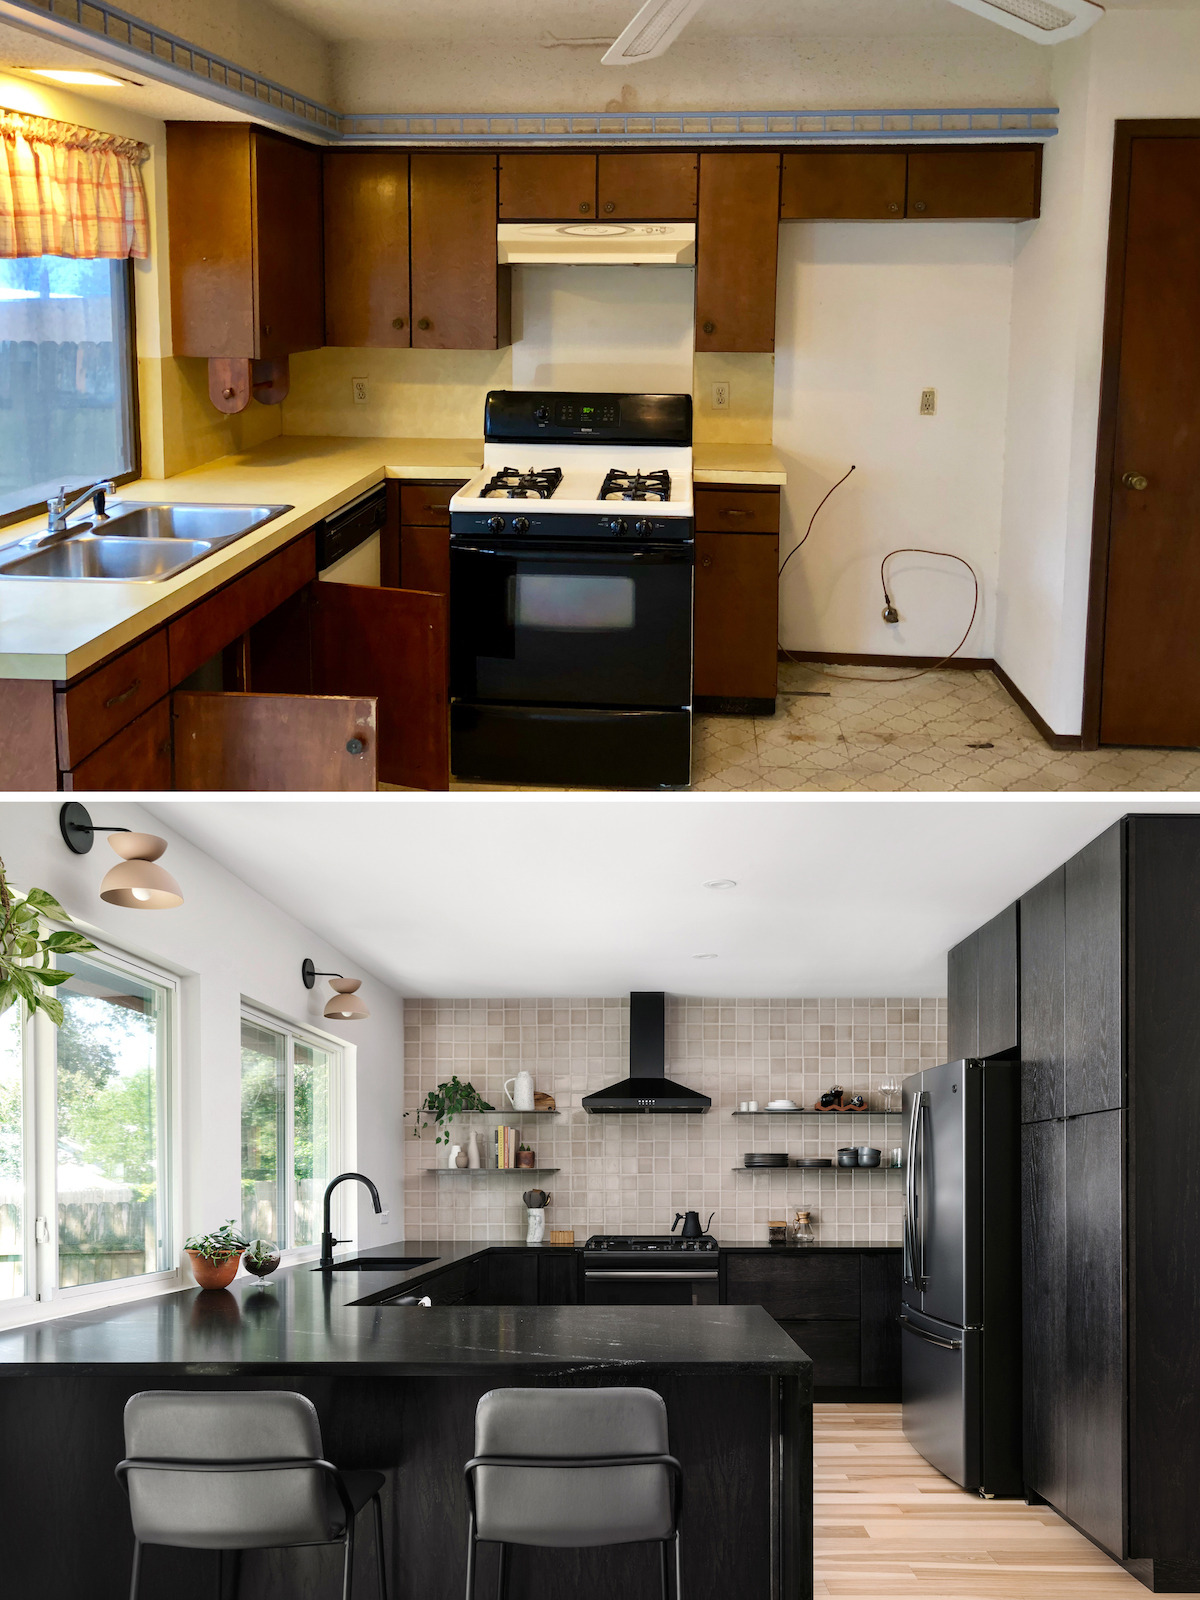 1970s Kitchen Remodel Before And Afters The Effortless Chic